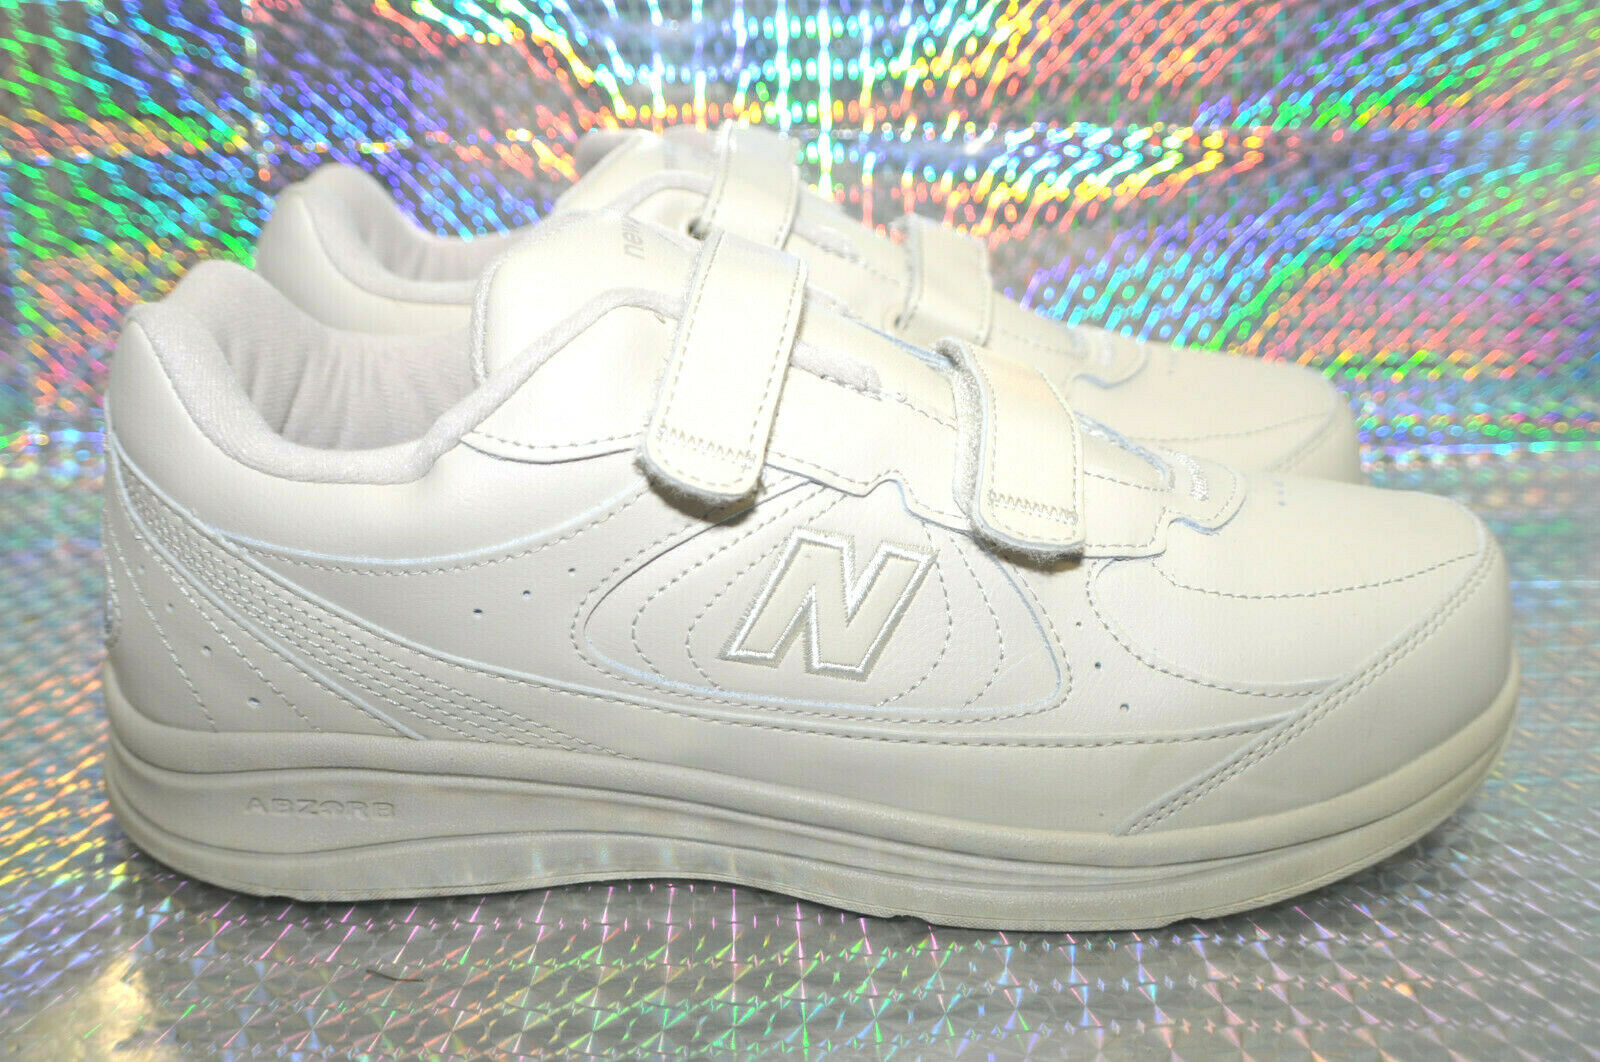 Men's New Balance  MW577 Walking shoes  Size us 11-4E  U.S.A